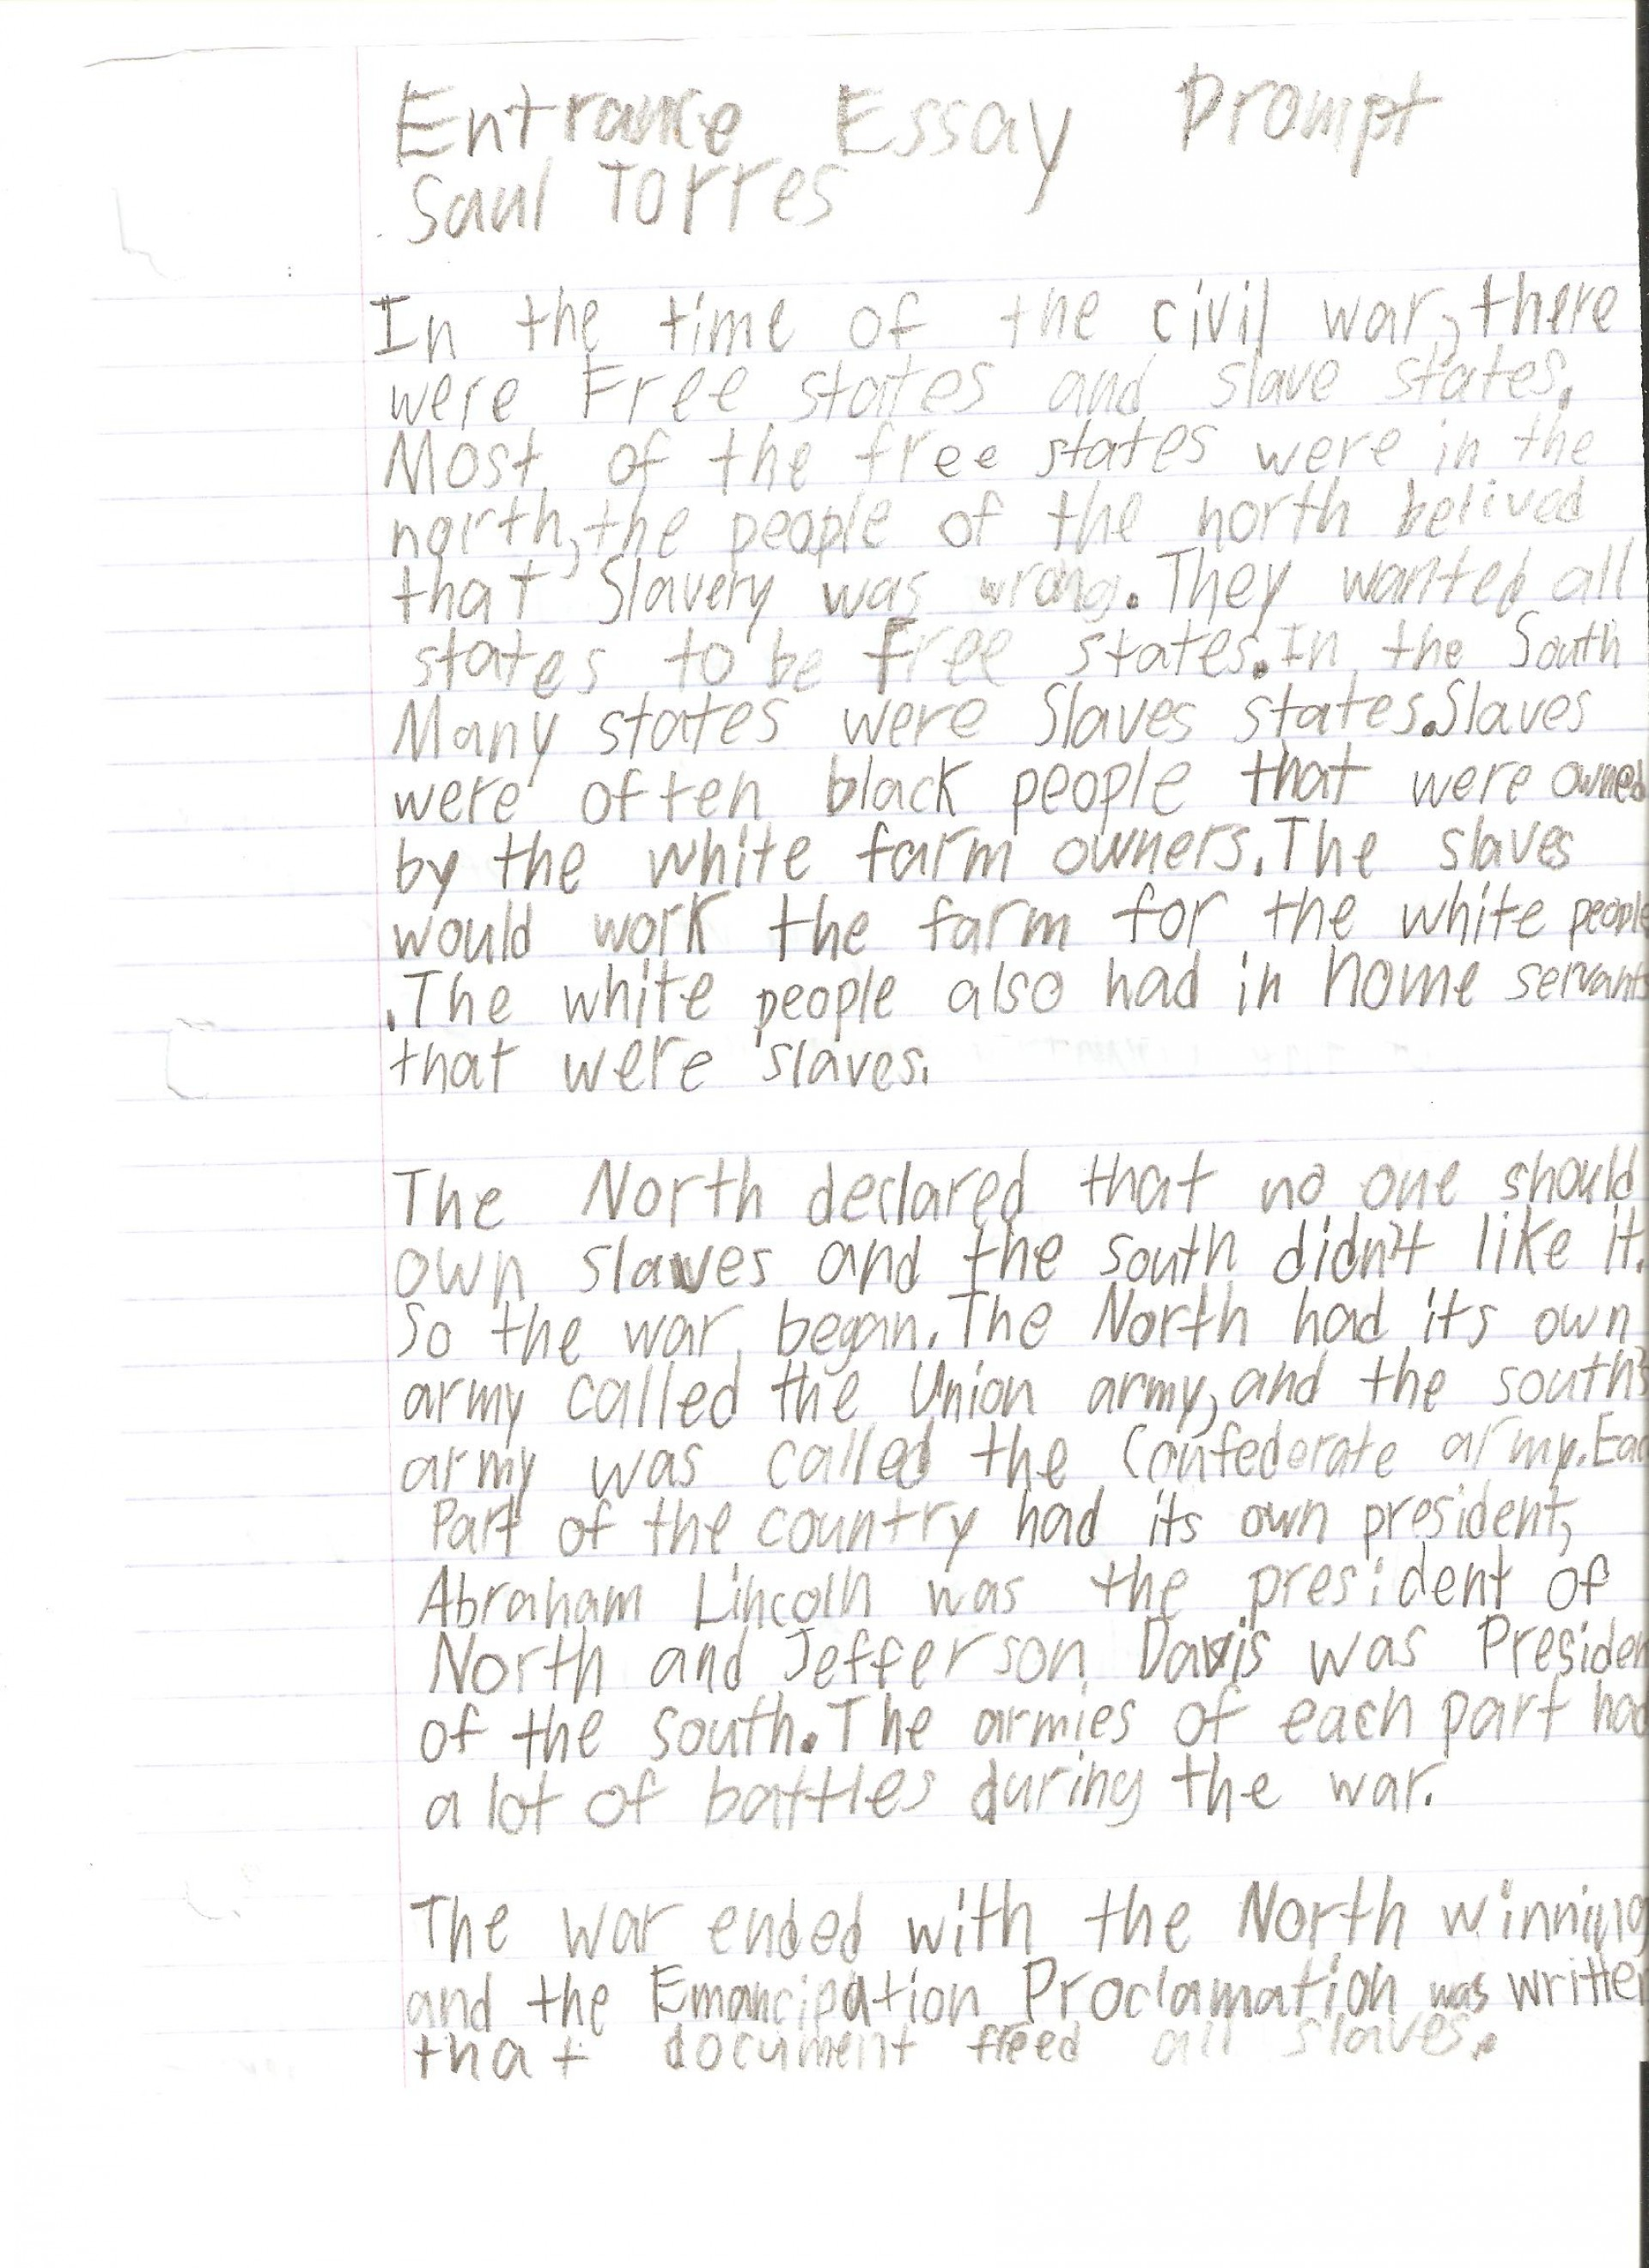 013 Concept Essay Example Saul Torres Fearsome On Racism Paper Examples Beauty 1920